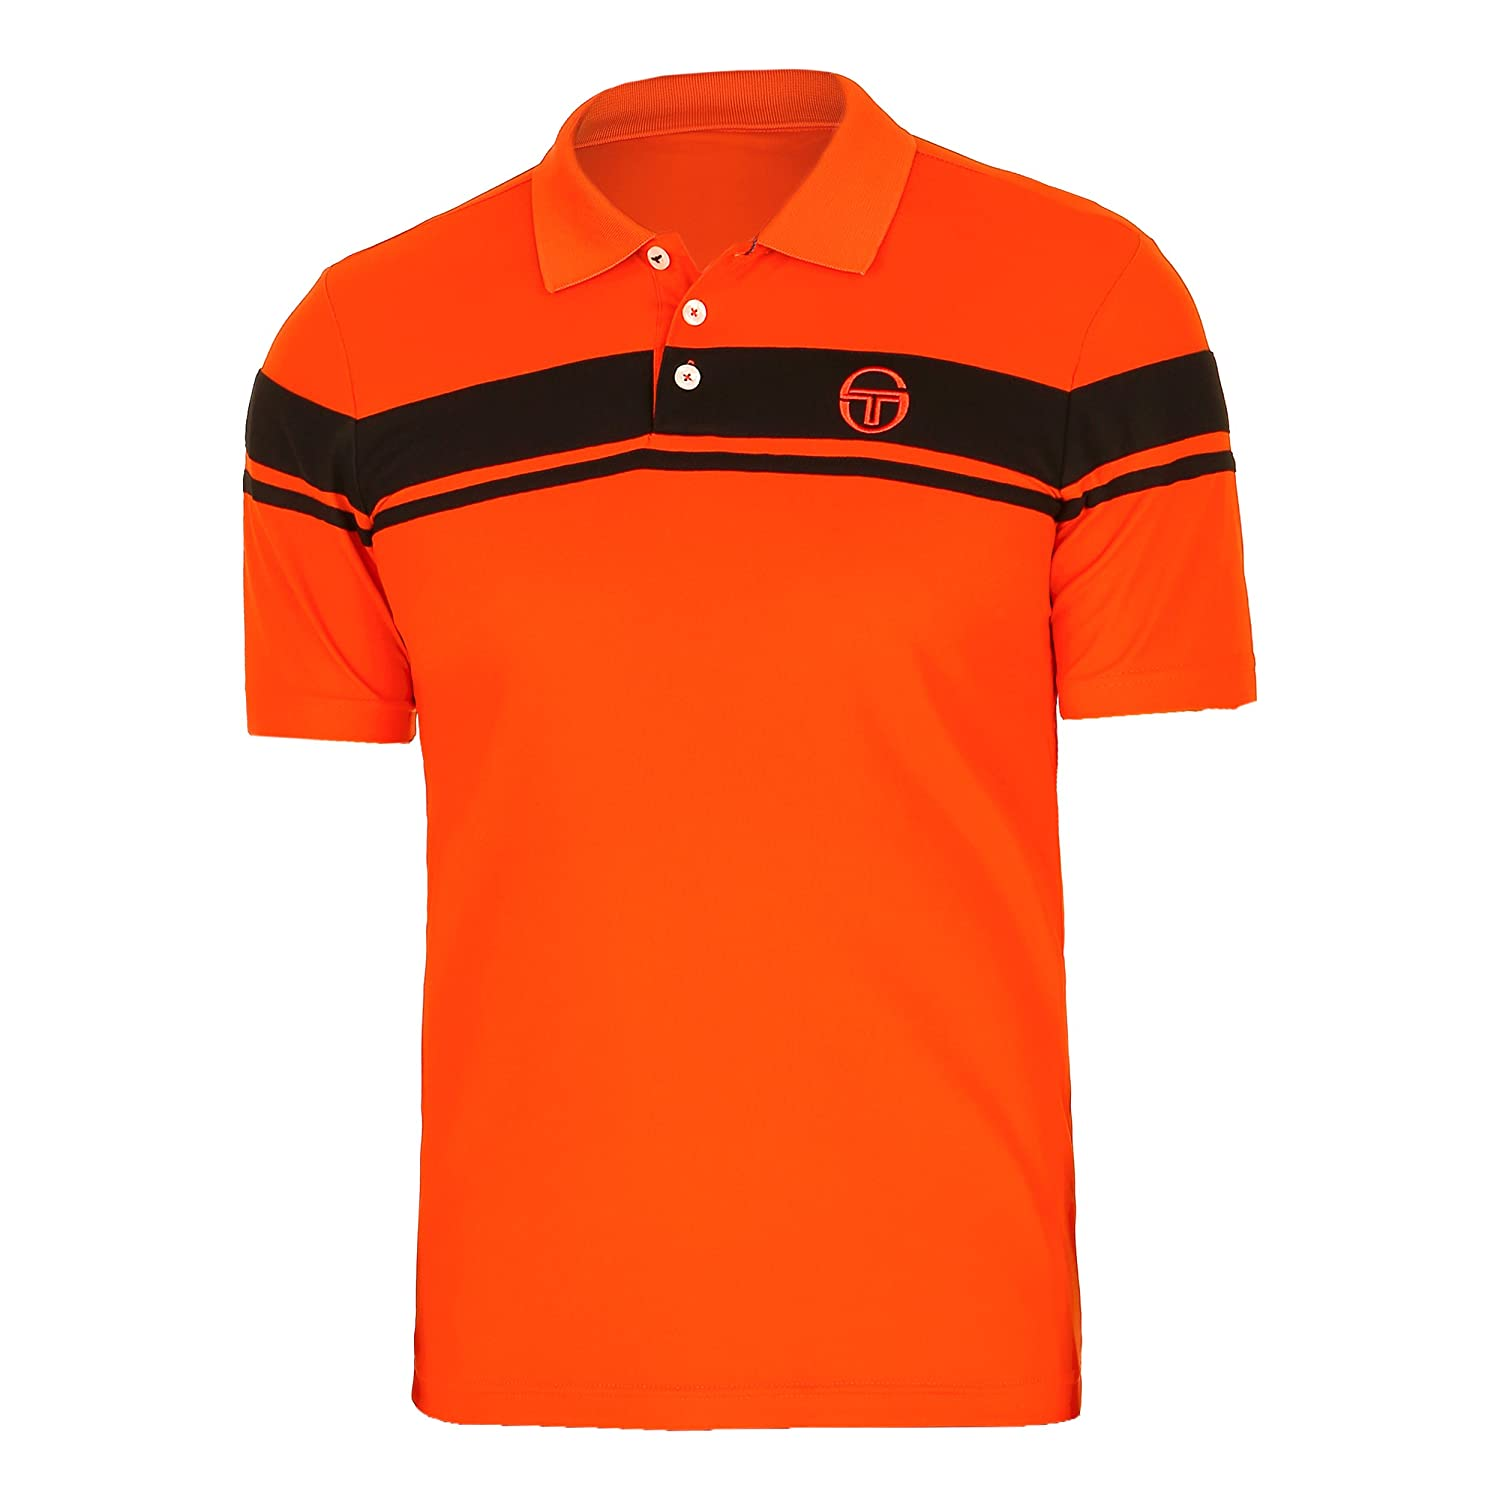 Sergio Tacchini Young Line Pro Polo Men hw17, small: Amazon.es ...